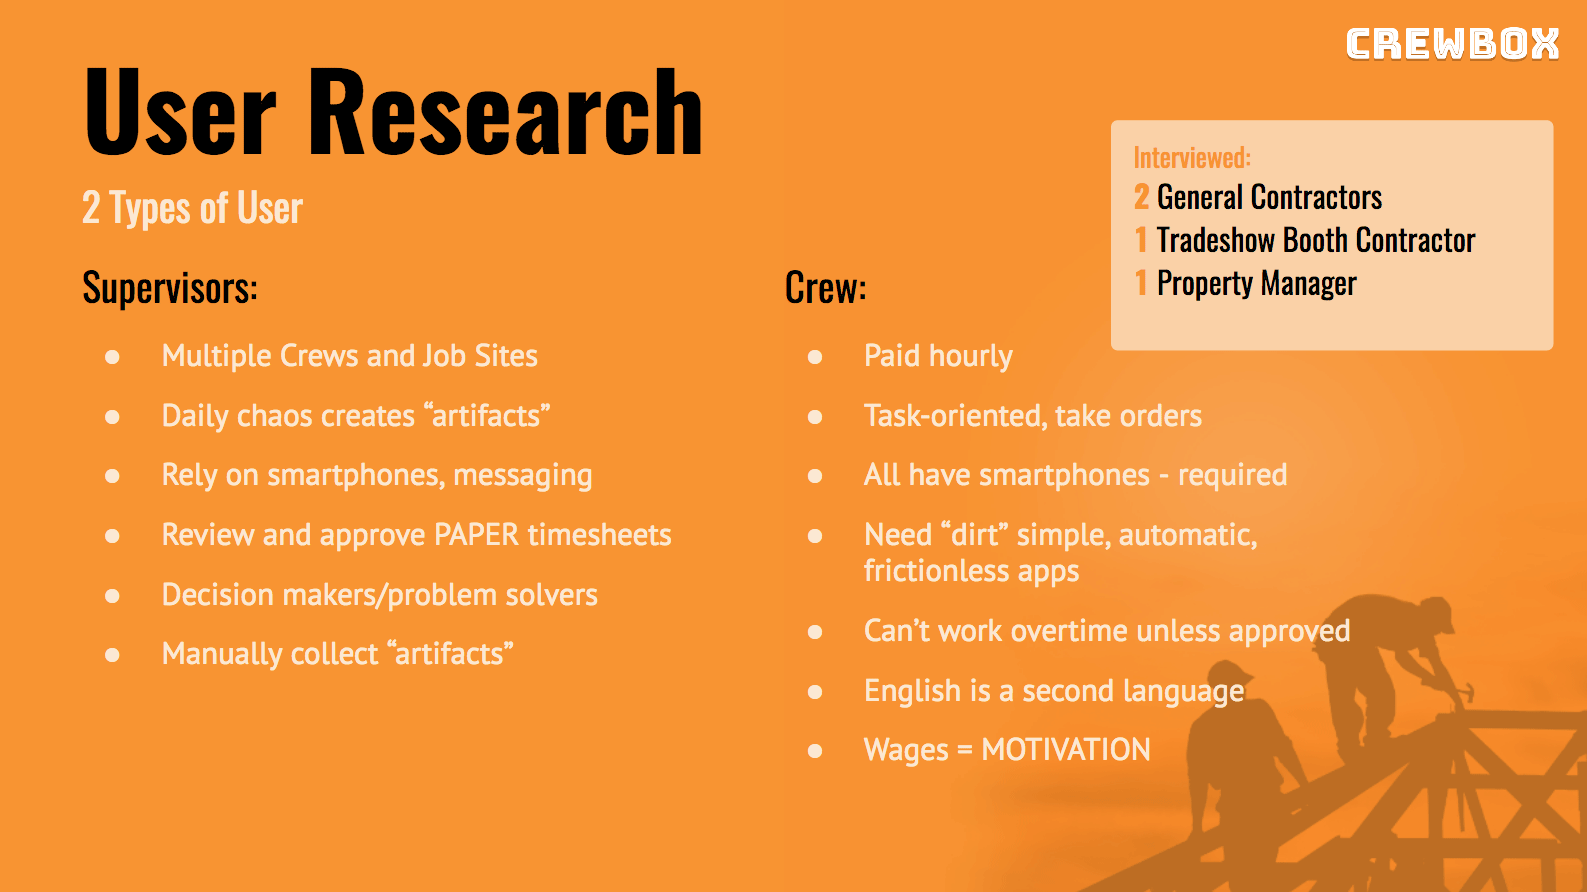 User Research Brief